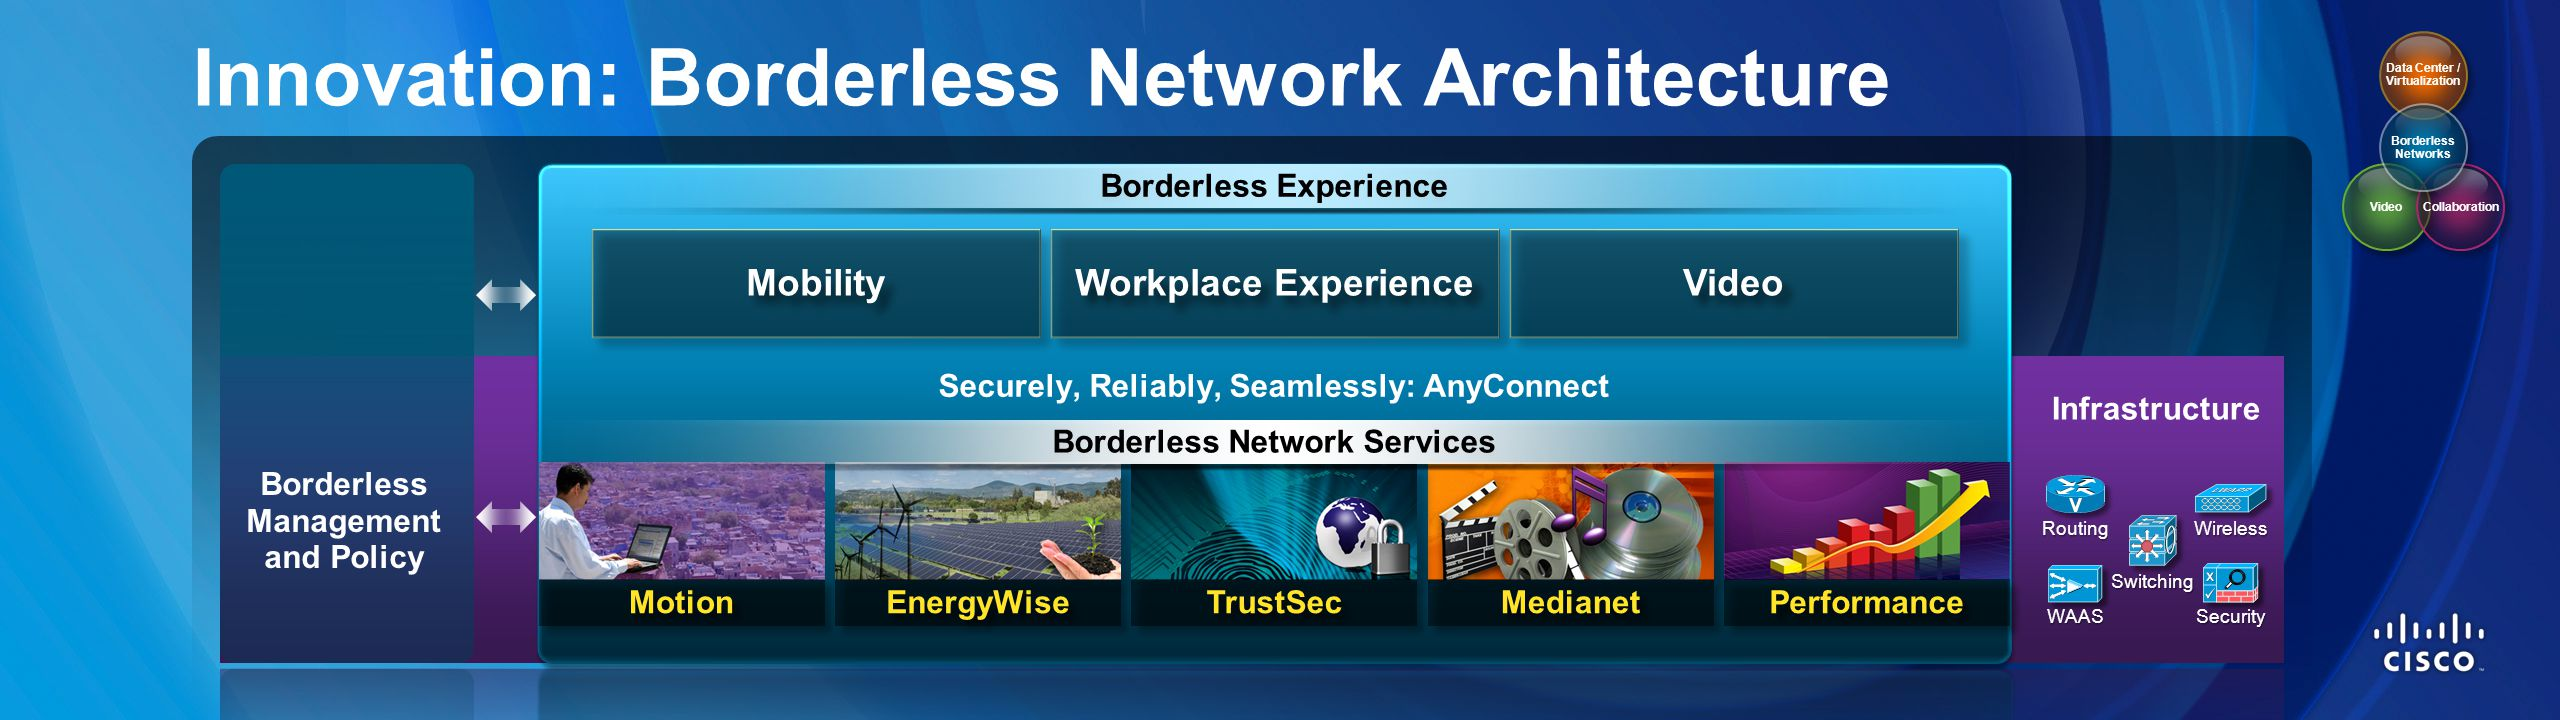 Innovation: Borderless Network Architecture Borderless Experience Performance Mobility Workplace Experience Video Switching Data Center / Virtualizati